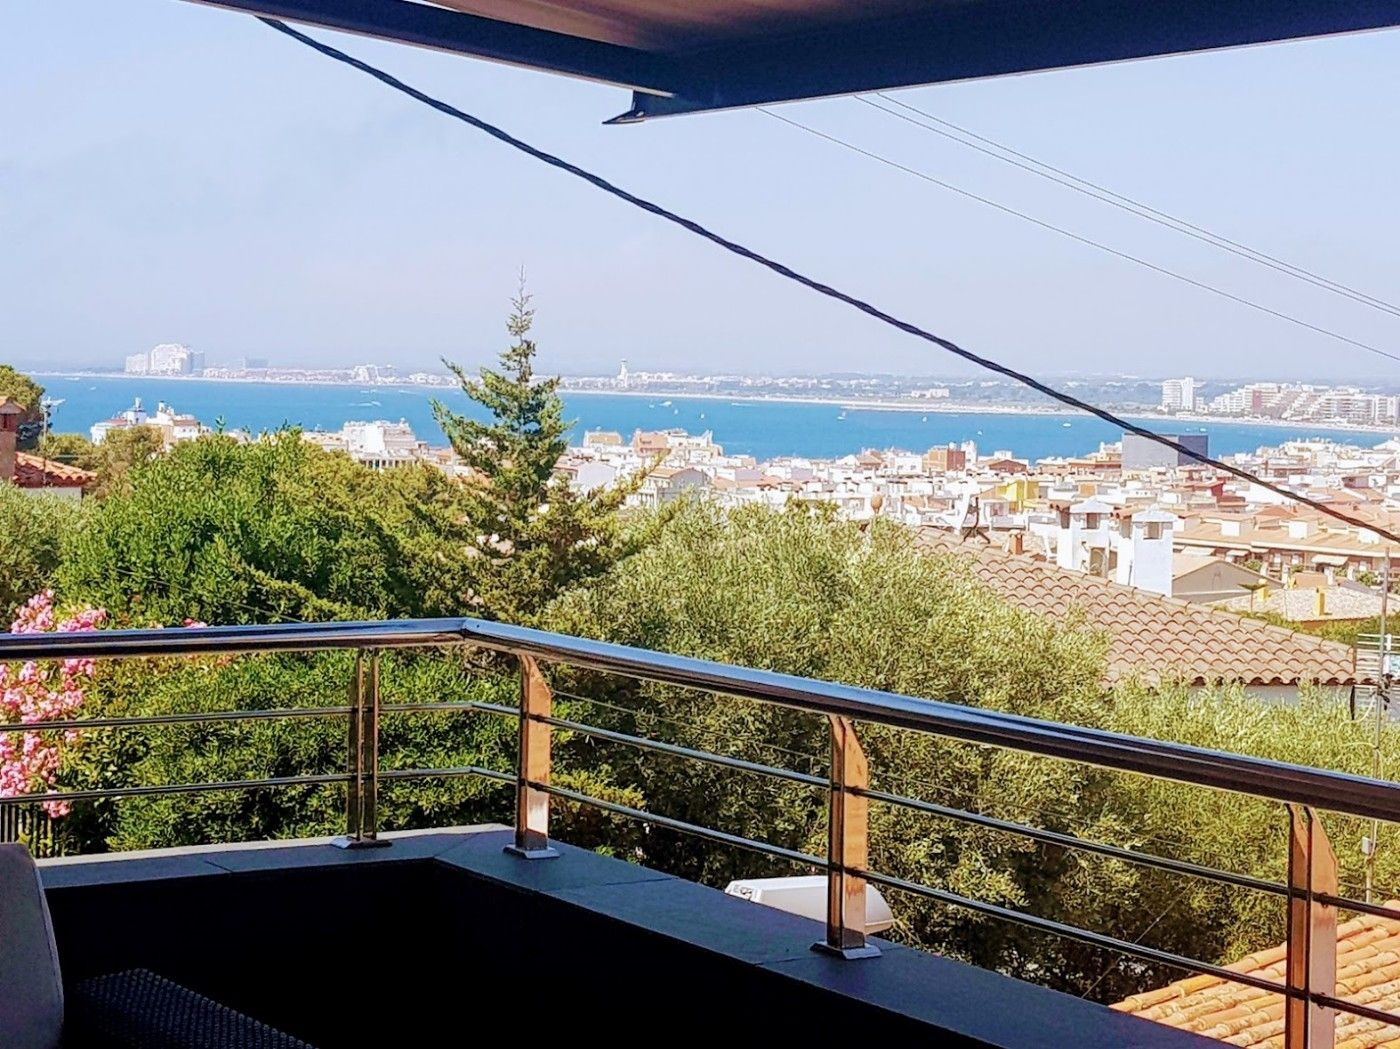 House  Carrer pericles (de). Impresionantes vistas al mar